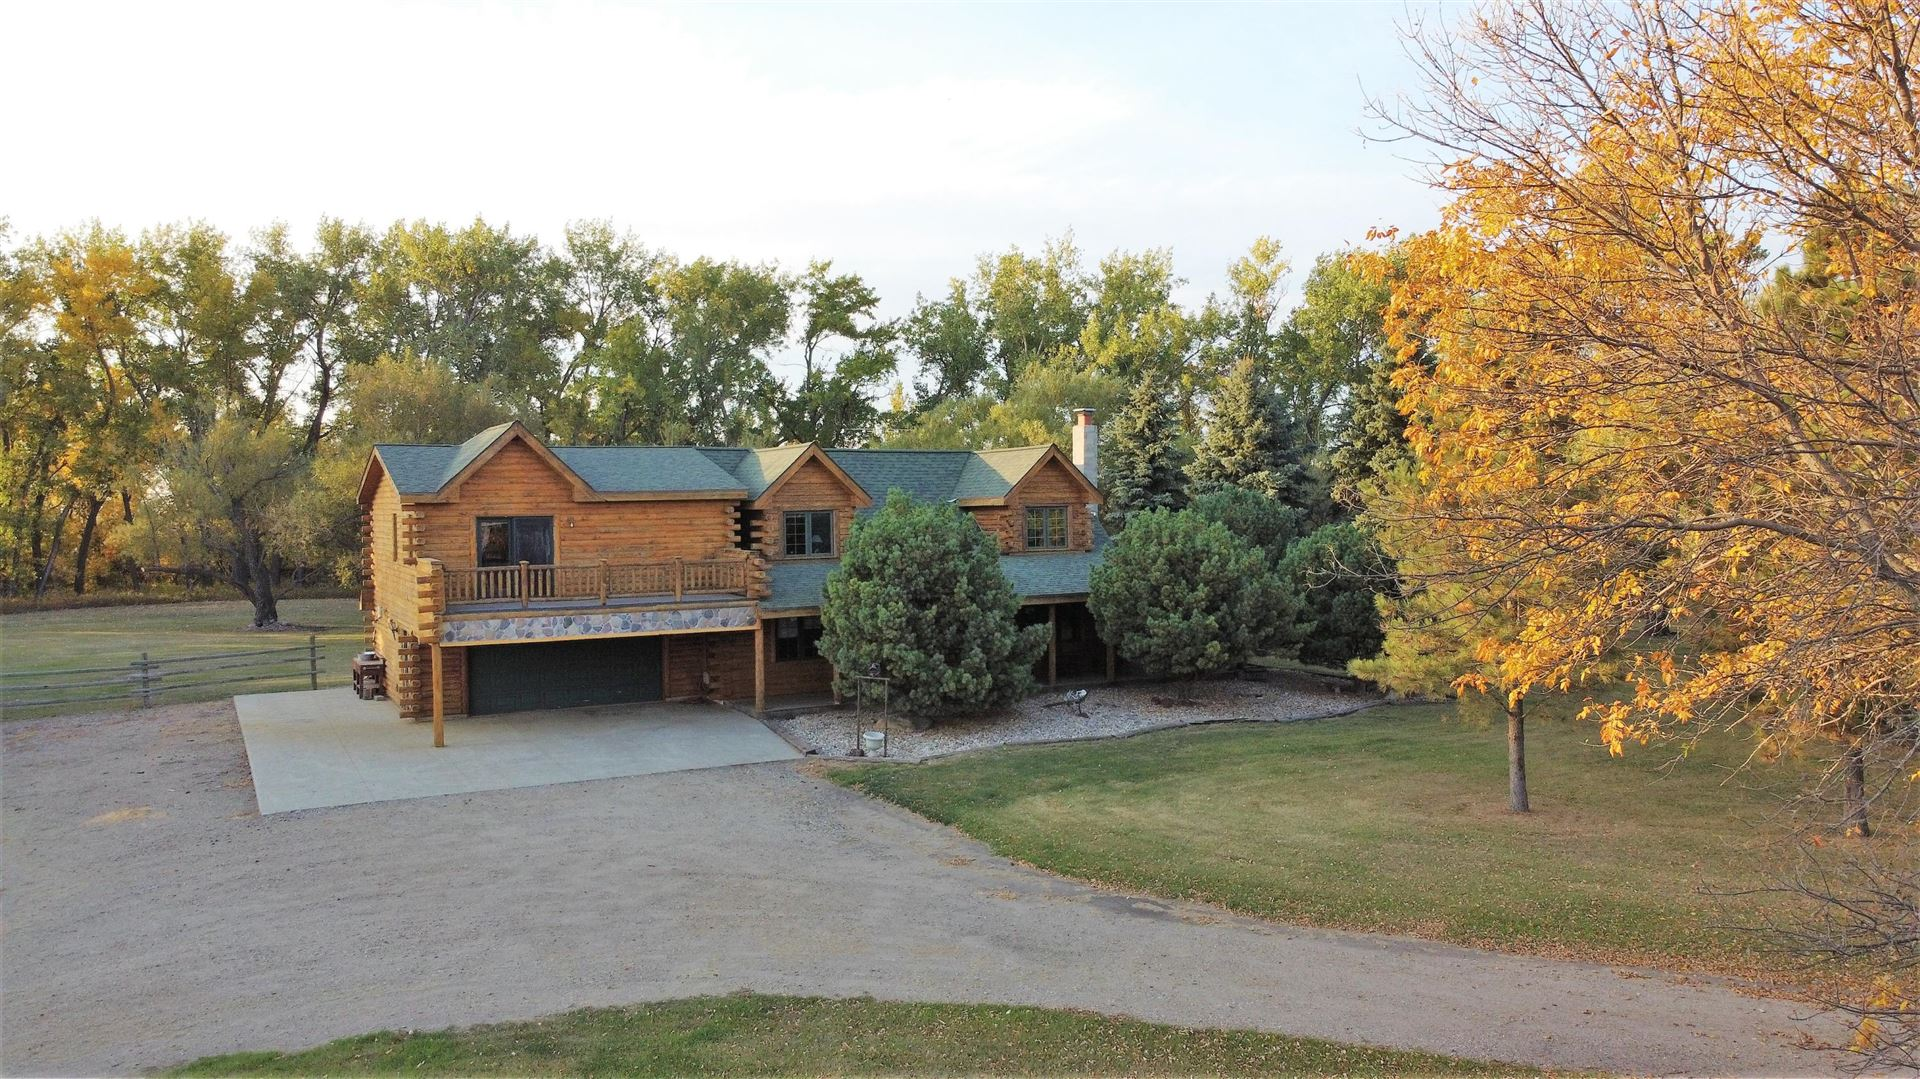 Photo for 7260 Hwy 200, Carrington, ND 58421 (MLS # 20-563)